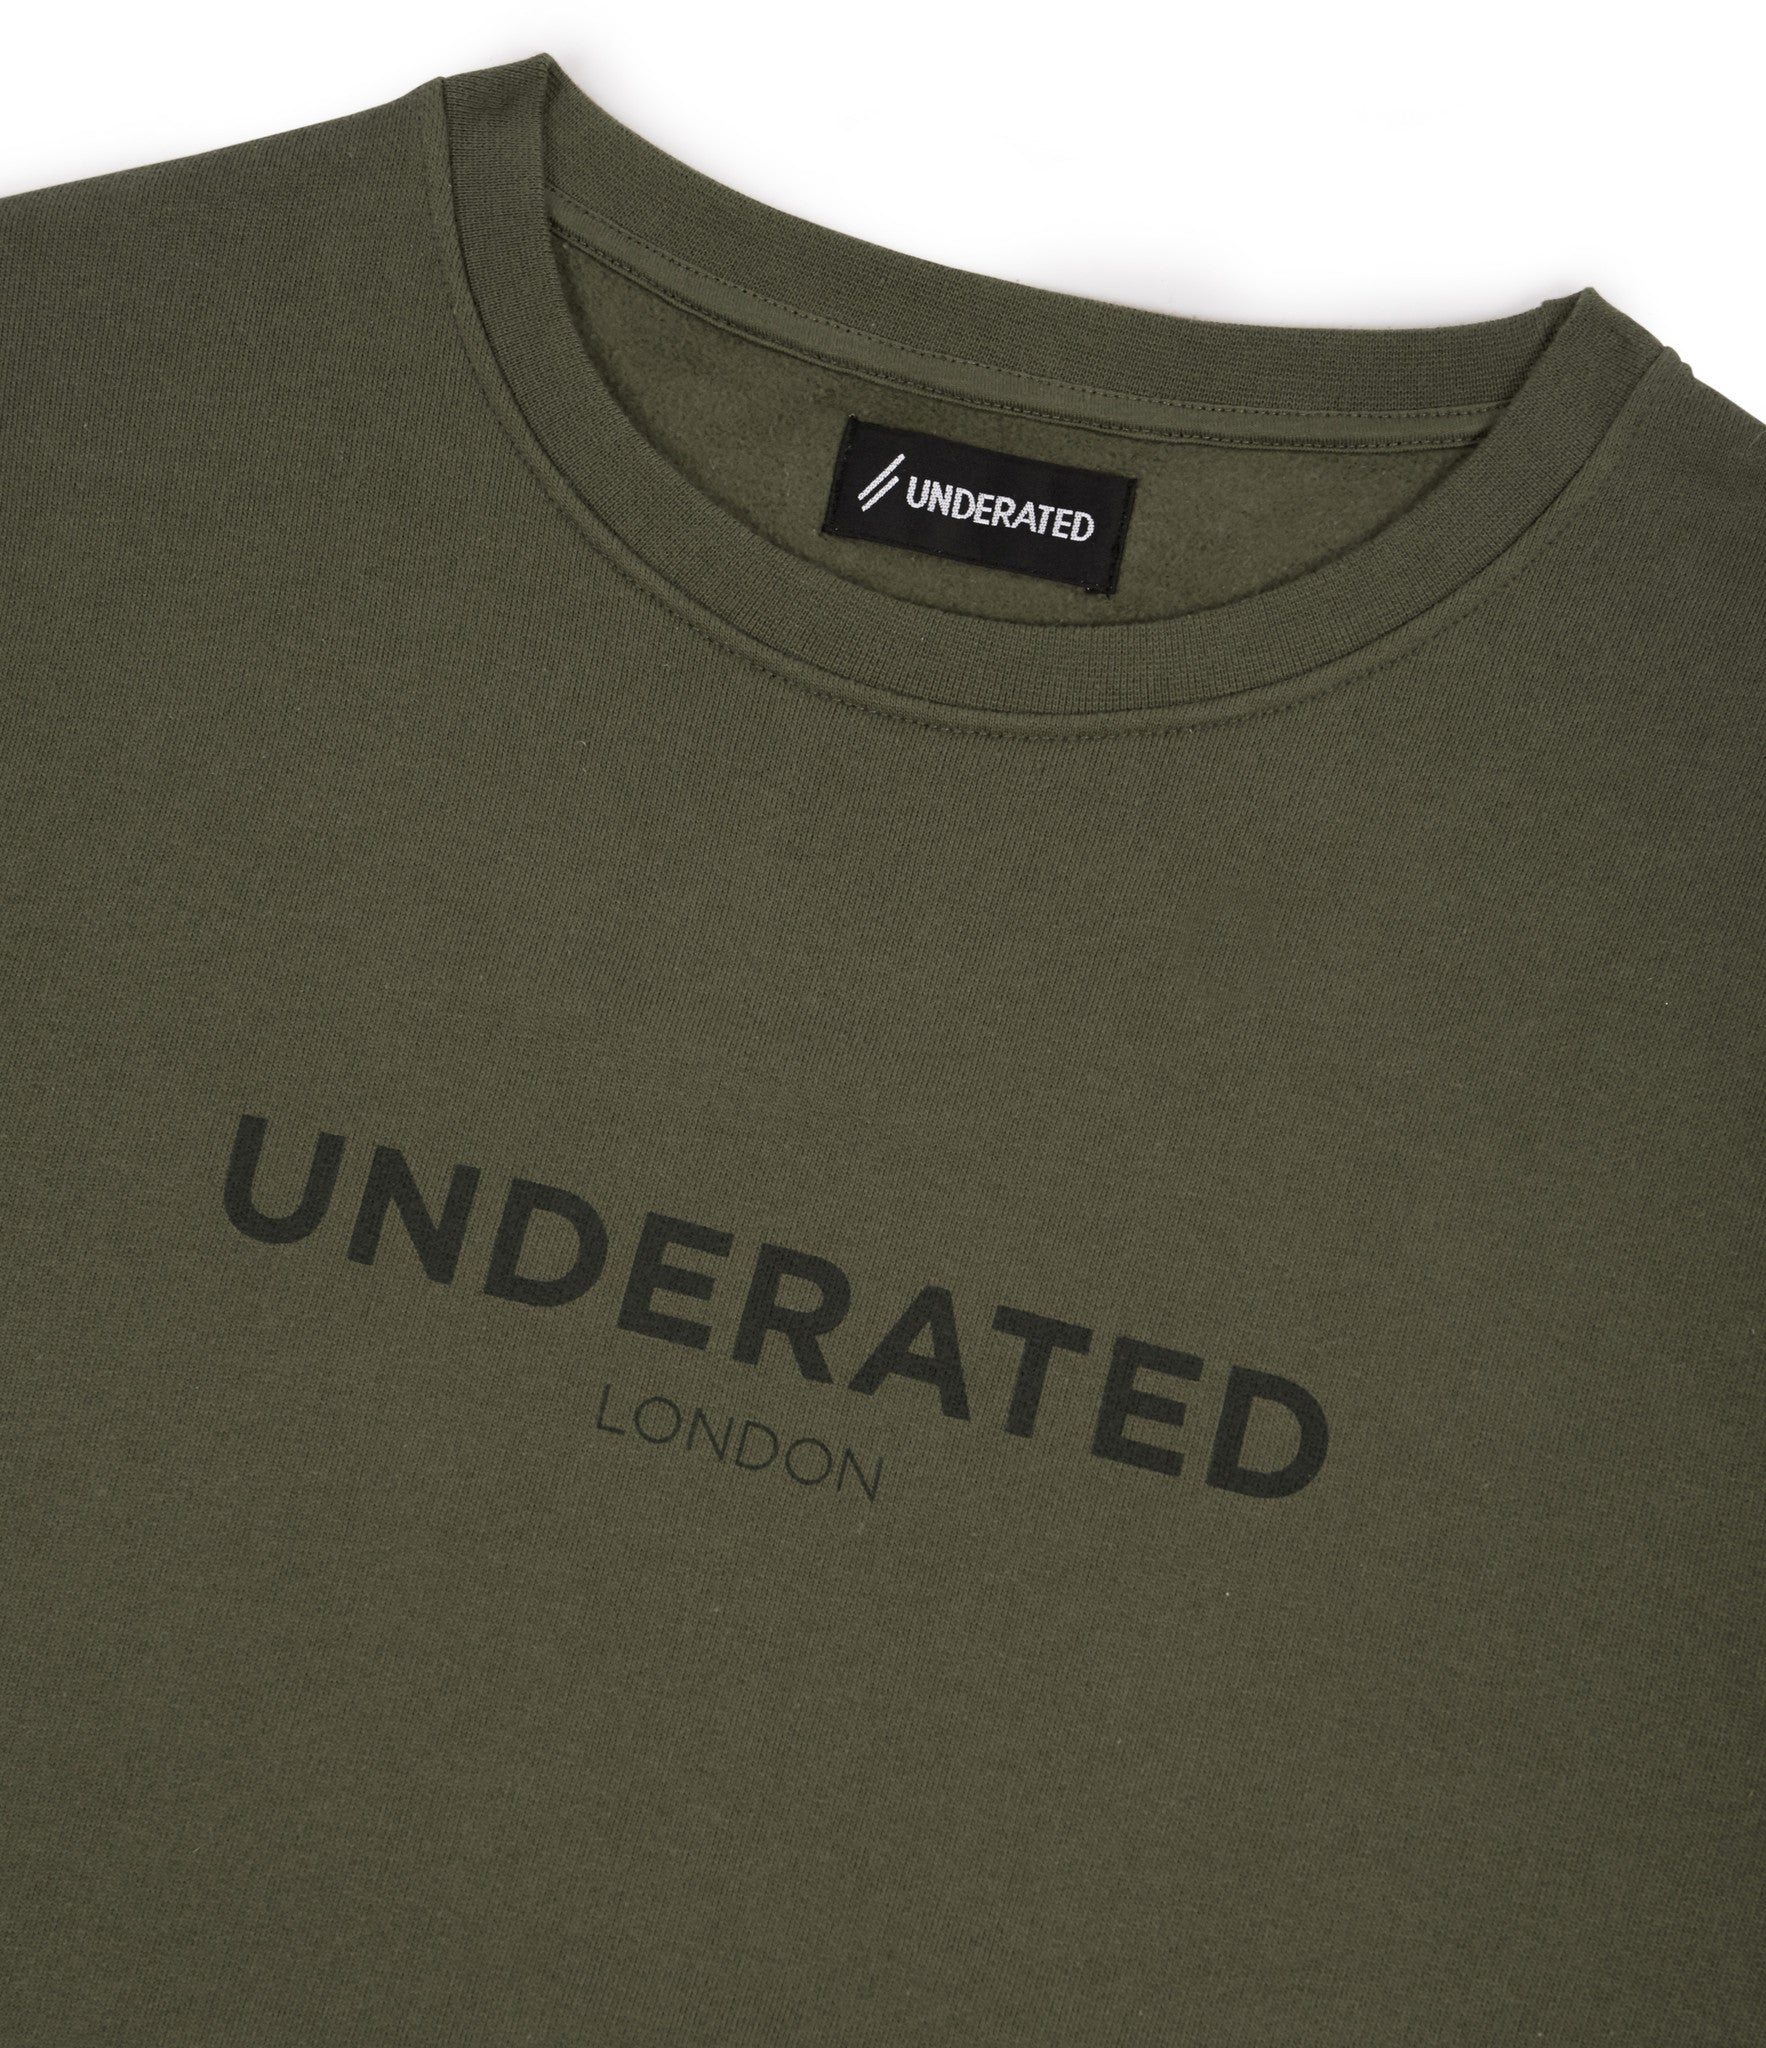 SW400 Tonal Print Sweatshirt - Khaki - underated london - underatedco - 3